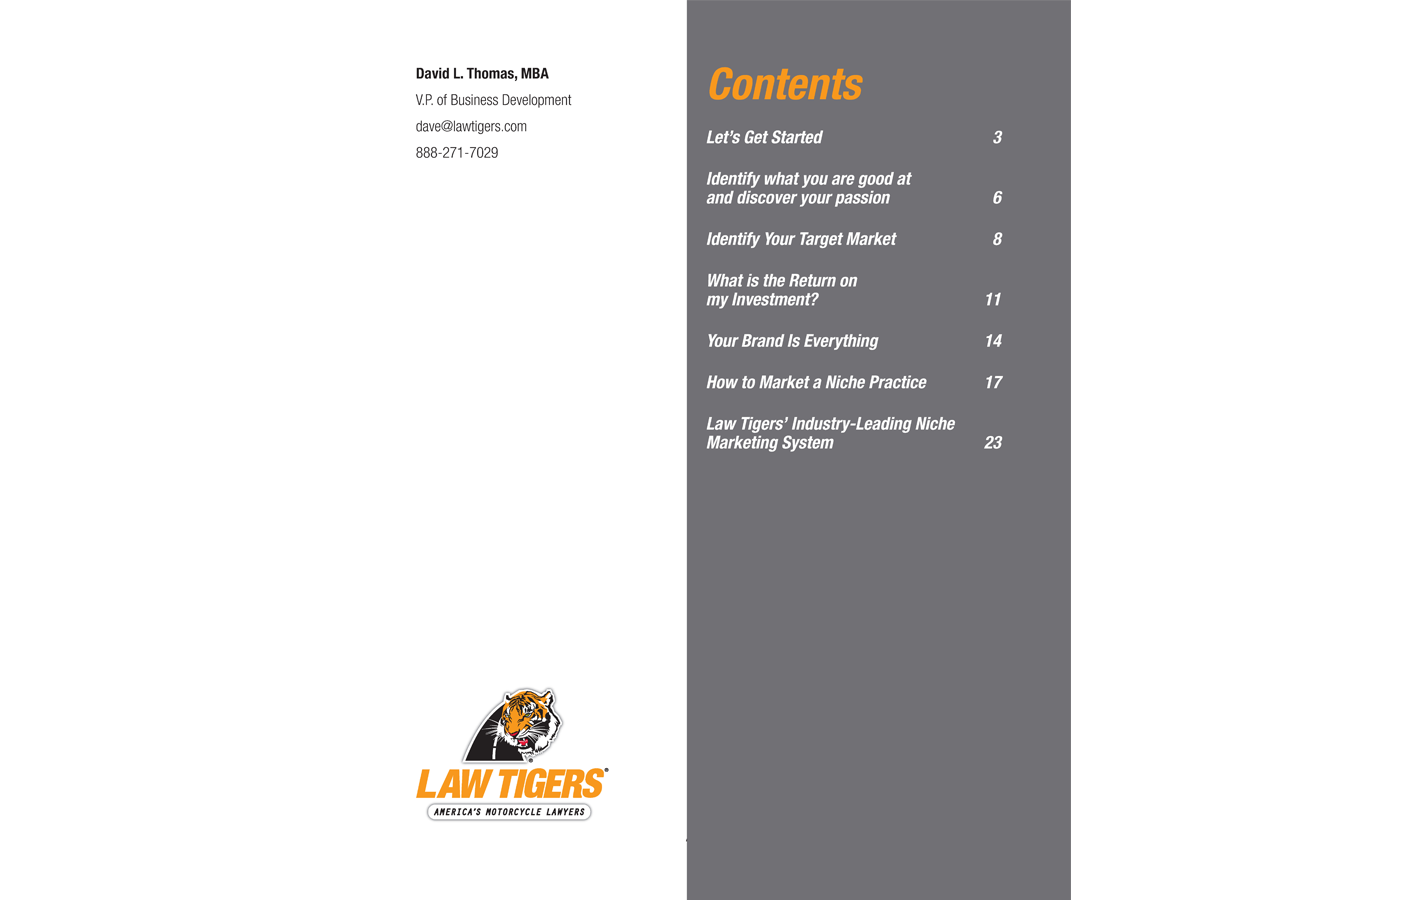 Contents page for The Definitive Niche Marketing Guide for Personal Injury Lawyers